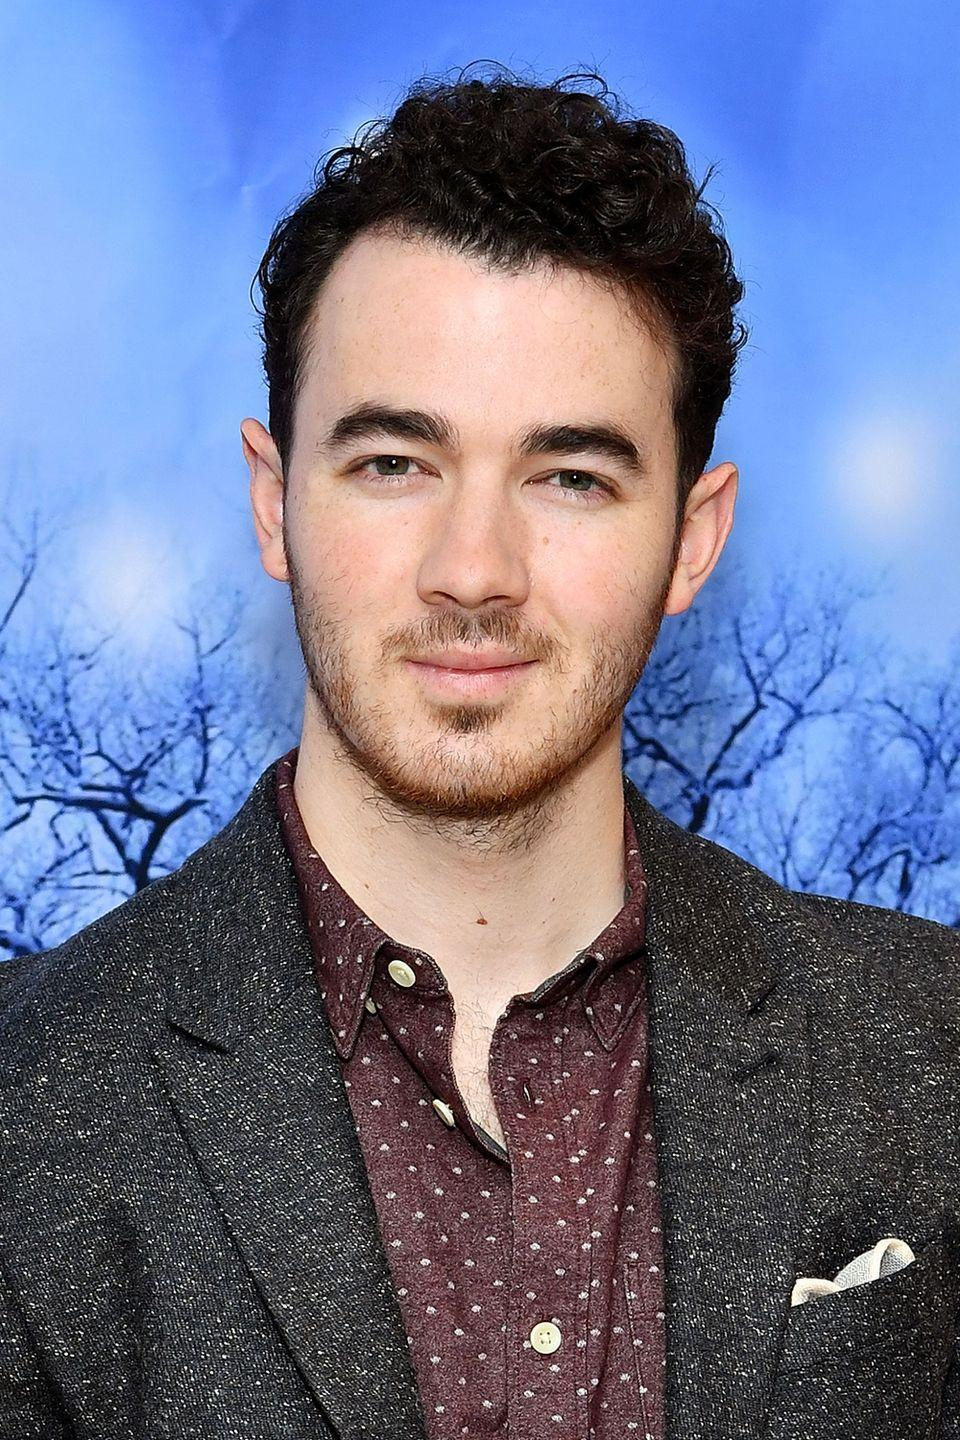 """<p>Kevin Jonas is another celebrity who wore a purity ring as a symbol of his commitment to remaining a virgin until saying, """"I do."""" He got married to Danielle Deleasa in 2009 after a two-year relationship. """"I could've gotten married the day after we got engaged,"""" Kevin joked with <em><a href=""""http://people.com/celebrity/sean-lowe-tim-tebow-lolo-jones-celebrity-virgins/#kevin-jonas"""" rel=""""nofollow noopener"""" target=""""_blank"""" data-ylk=""""slk:People"""" class=""""link rapid-noclick-resp"""">People</a></em>. """"We'd have gone crazy waiting any longer.""""</p>"""